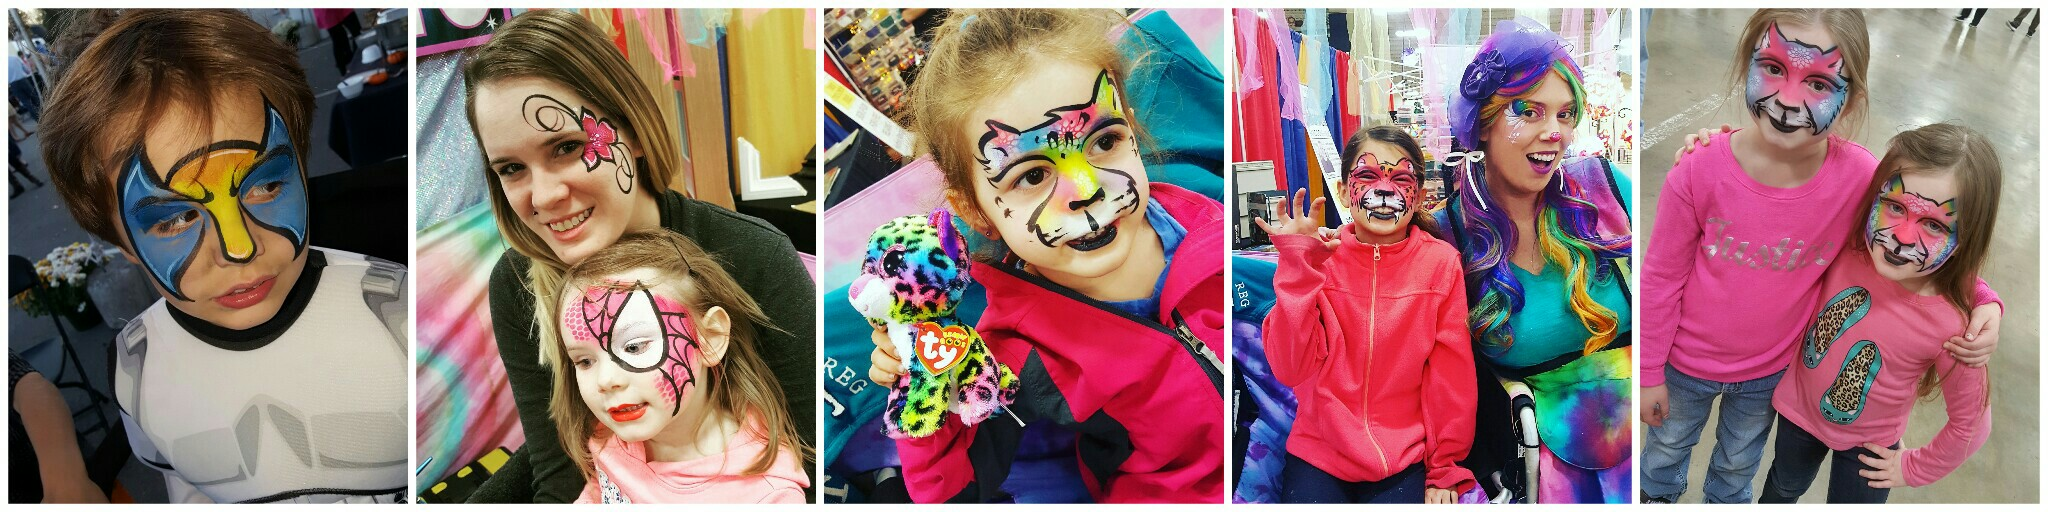 Trust us to bring the FUN to your event with Knoxville's premier face painters, balloon twisters, clowns, princesses and more! Call us at (865) 344-7072 to book today! face painter, face, paint, painting, painters, face painters in knoxville tn, face painting in knoxville, knoxville face painters, knoxville face painting companies in knoxvillle, face painters in dandridge, face painters in morristown, face painters in sevierville, dandridge face painters, sevierville face painters, morristown face painters, face painters in pigeon forge, pigeon forge face painters, face painting, face painting company, face painting near me, face painters near me, face painters for birthday parties, birthday party face painters, clown, clowns, clowns in knoxville, clown in knoxville, knoxville clown, knoxville clowns, clowns for birthday parties, birthday party clowns, princesses for hire, knoxville princesses, princesses in knoxville, airbrush tattoos, airbrush, tattoos, airbrush tattoos in knoxville, knoxville airbrush tattoos, temporary airbrush tattoos, temporary airbrush tattoos in knoxvile, balloon twister, balloon twisting, balloon twister in knoxville, balloon twister in knoxville tn, party company, party company in knoxville, temporary airbrush tattoos in morristown, temporary airbrush tattoos in Sevierville, clowns in Sevierville, face painters for hire, party company, entertainment, party company in Knoxville, Knoxville party company, Knoxville balloon twister, Knoxville entertainment company, entertainment company in Knoxville, party entertainment in Knoxville, Morristown party entertainment, party entertainment in Morristown, party entertainment in Sevierville, party entertainment in Dandridge, Dandridge party entertainment, balloon twisters in Dandridge, Dandridge balloon twister, fun children's entertainment in Knoxville, Knoxville children's entertainment, children's entertainment in Knoxville, children's entertainers in Knoxville, Knoxville children's entertainers, Knoxville party magic, Making Faces, Endless Impressions, Faces Gone Wild Face Painting, best face painters in Knoxville, Knoxville's best face painters, Royal Magic Events, Ms. Tickle, Knoxville Mom's Blog, Knoxville Kid's Directory, family fun in Knoxville, Knoxville family fun, airbrush tattoos, waterproof face painting, henna art, henna artist in Knoxville, Knoxville henna artist, face painting, balloon twisting, clowns, princesses and airbrush in Knoxville, Dandridge, Morristown and Jefferson City, Tennesssee